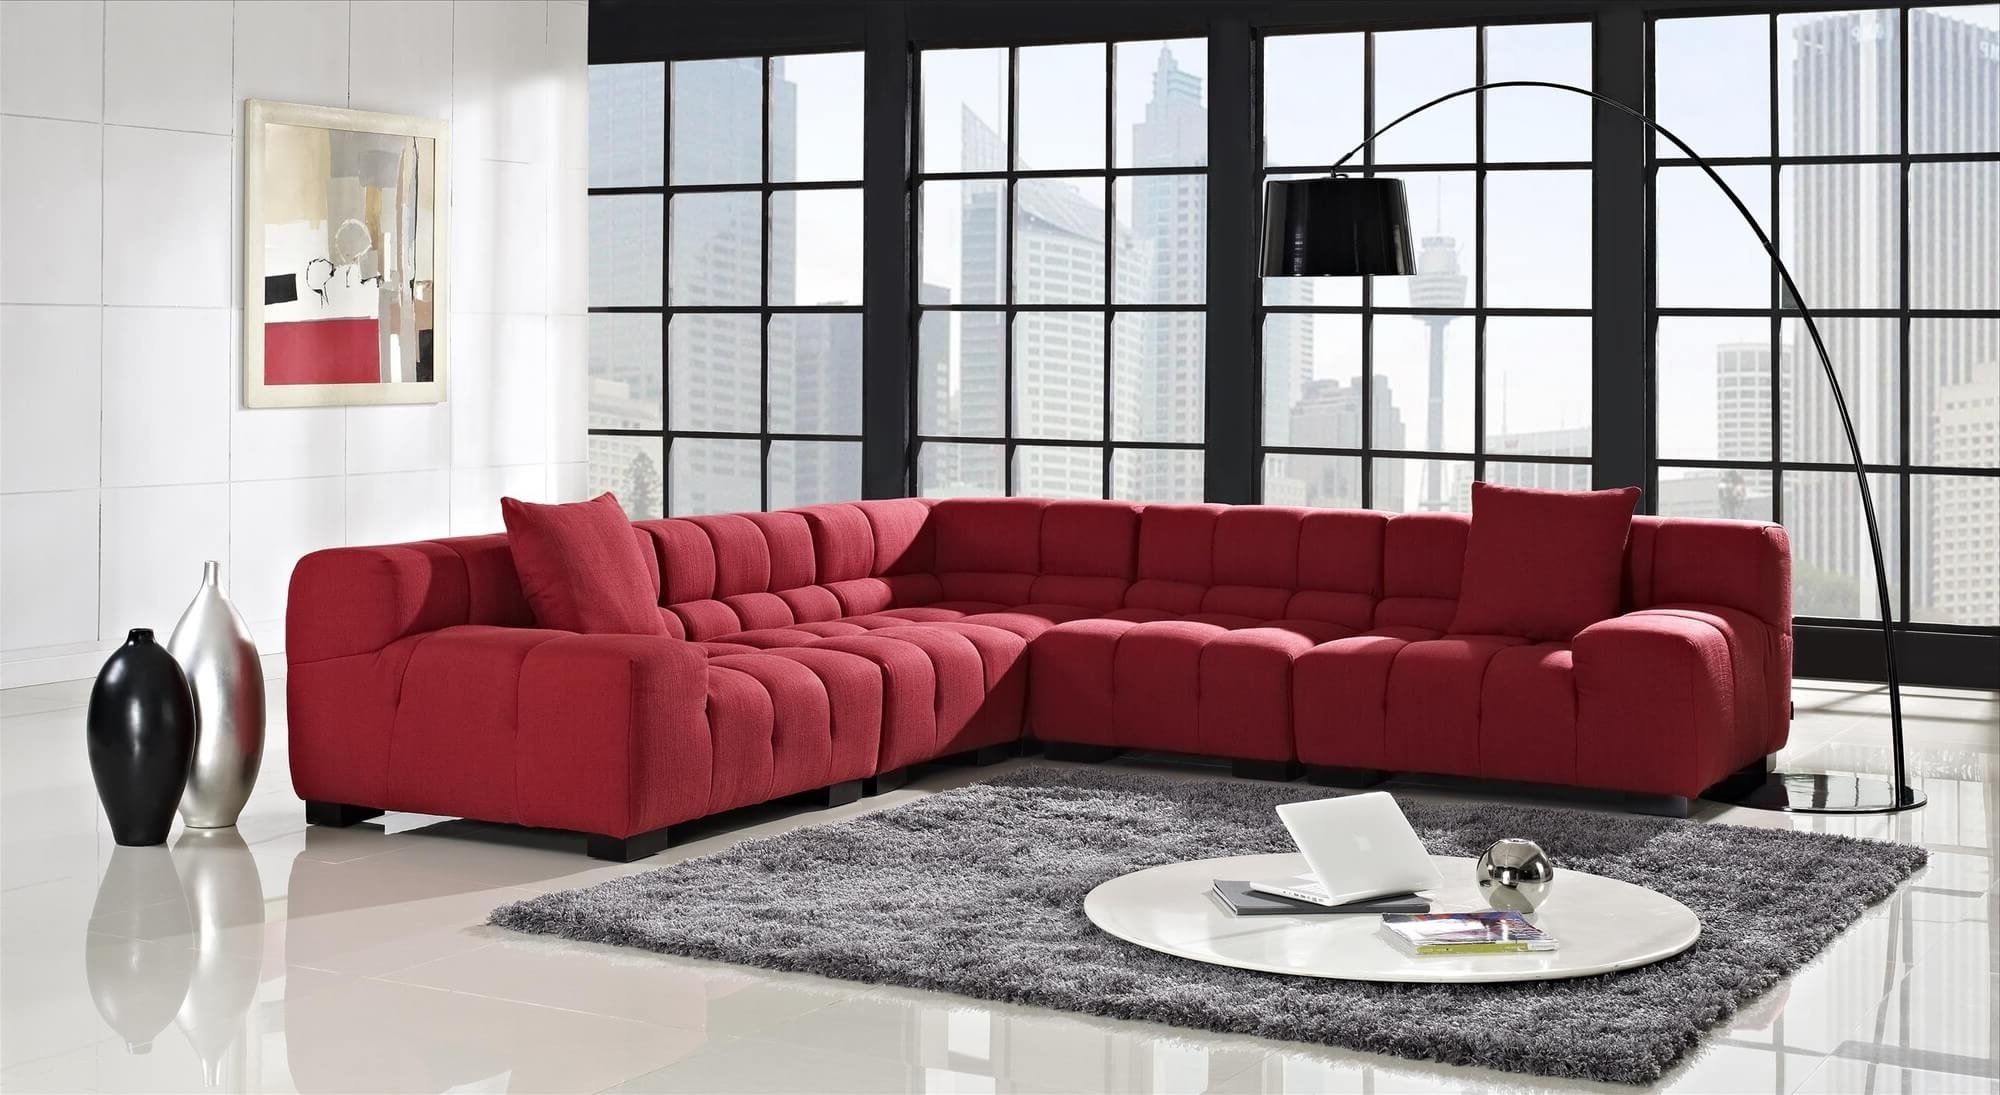 Sectional Sofas In Charlotte Nc Within Best And Newest Ethan Allen Charlotte Nc Modern Italian Leather Sofa Ethan Allen (View 12 of 15)